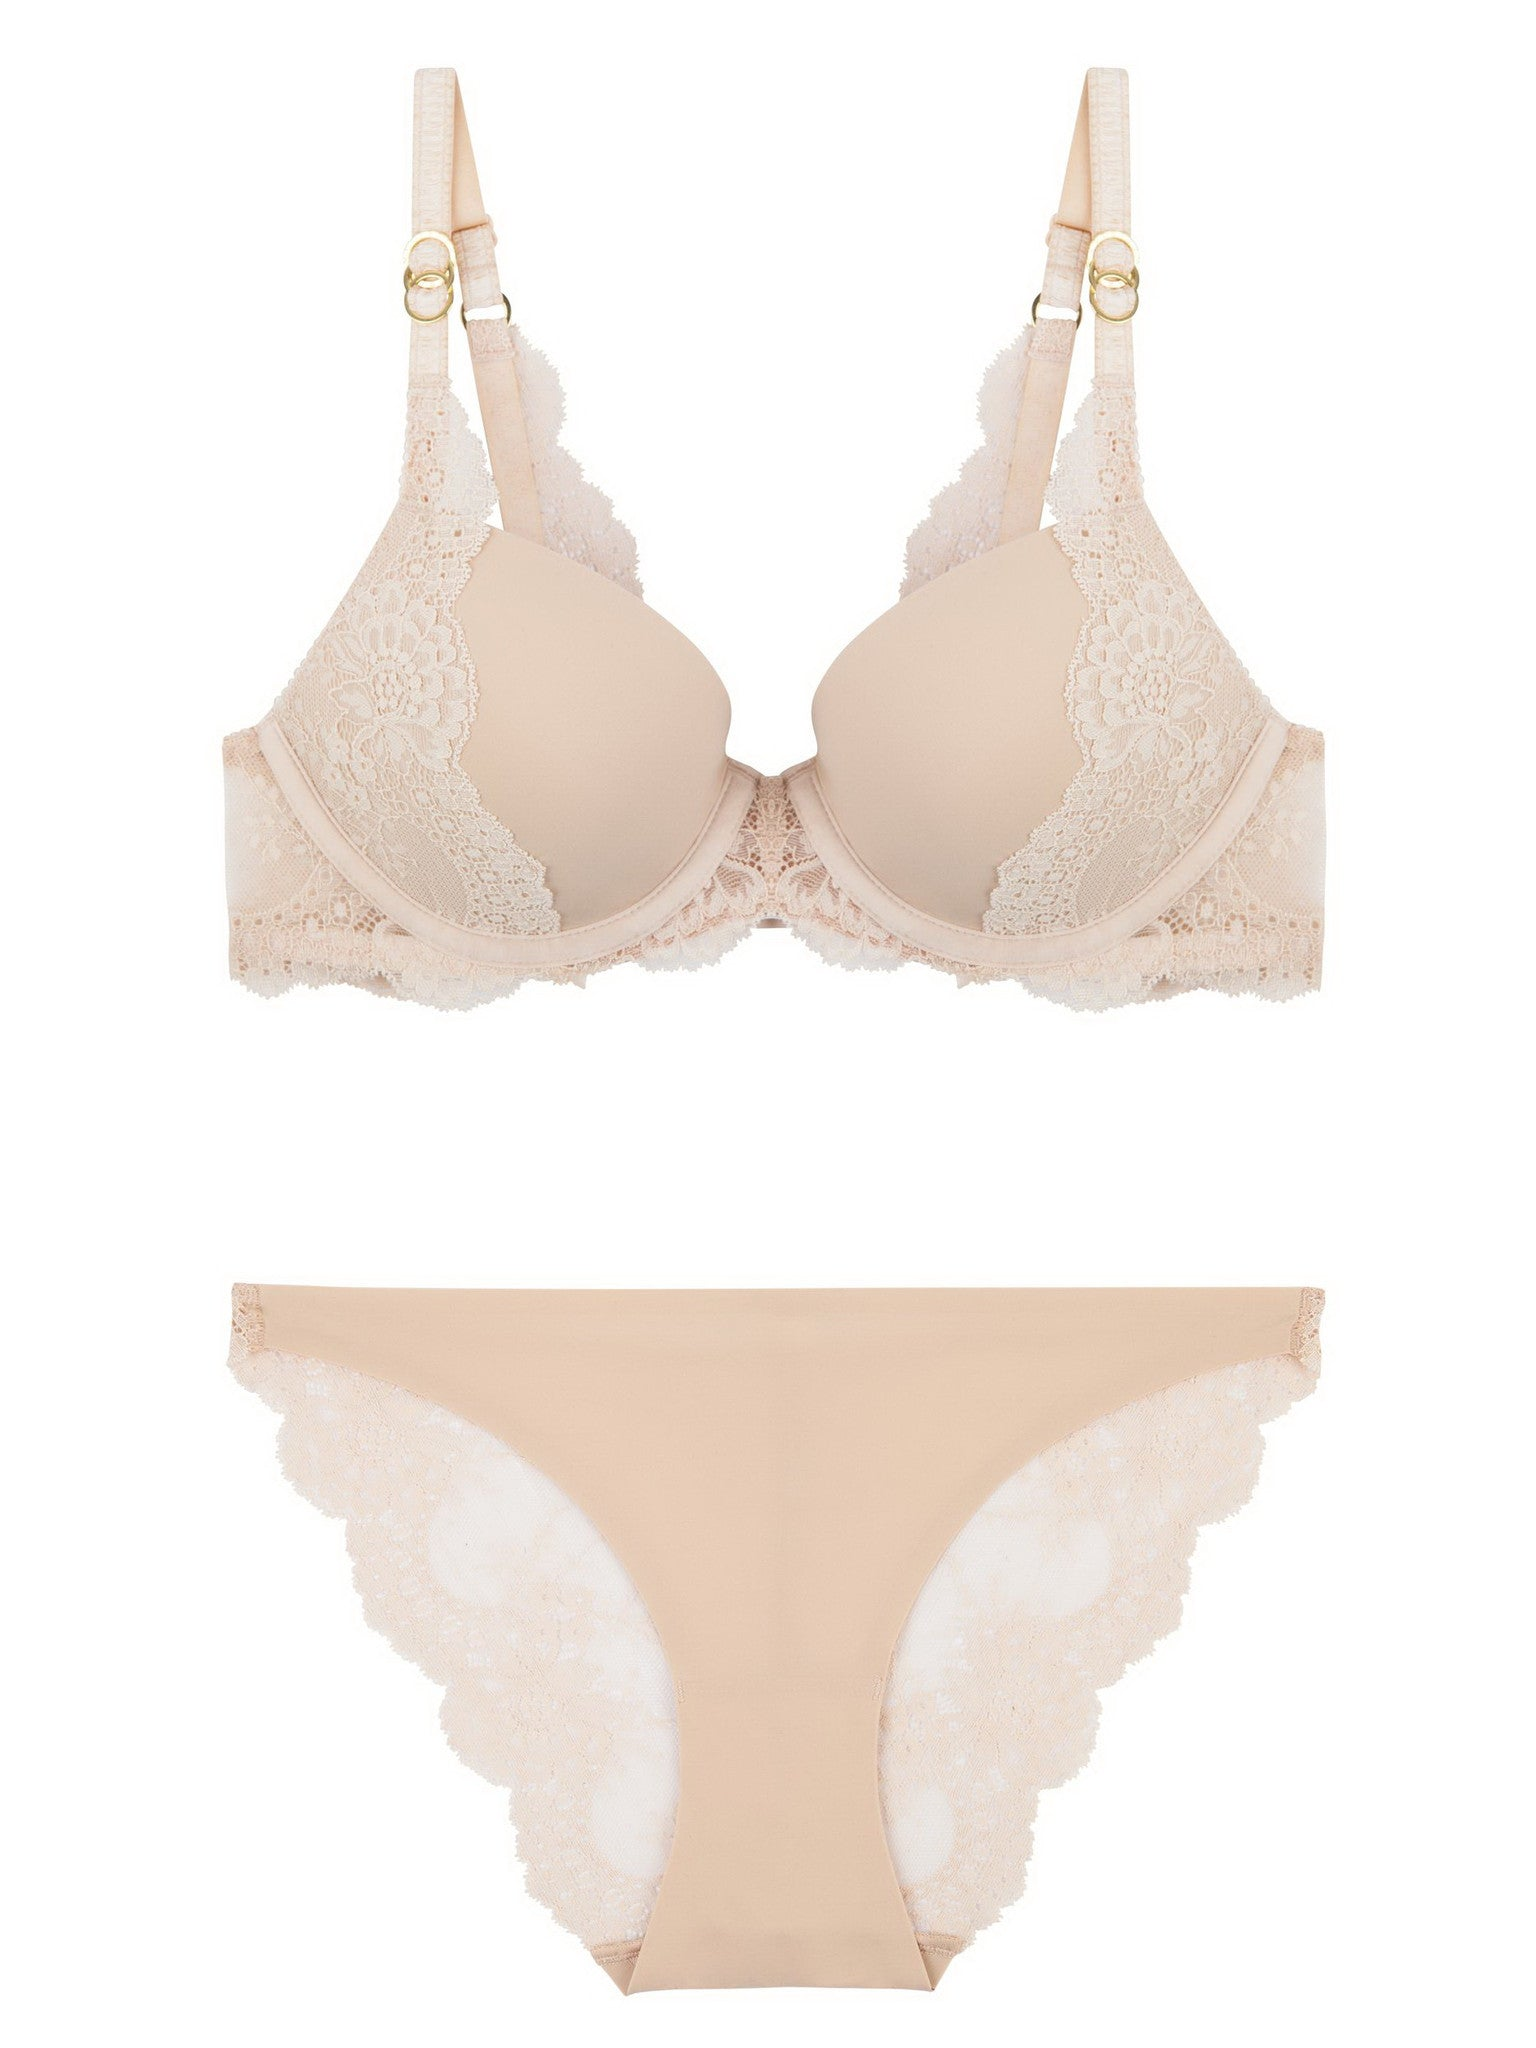 Stella McCartney Lingerie New Stella Smooth & Lace Bra-Contour Plunge - Knickers & Pearls Boutique - 4